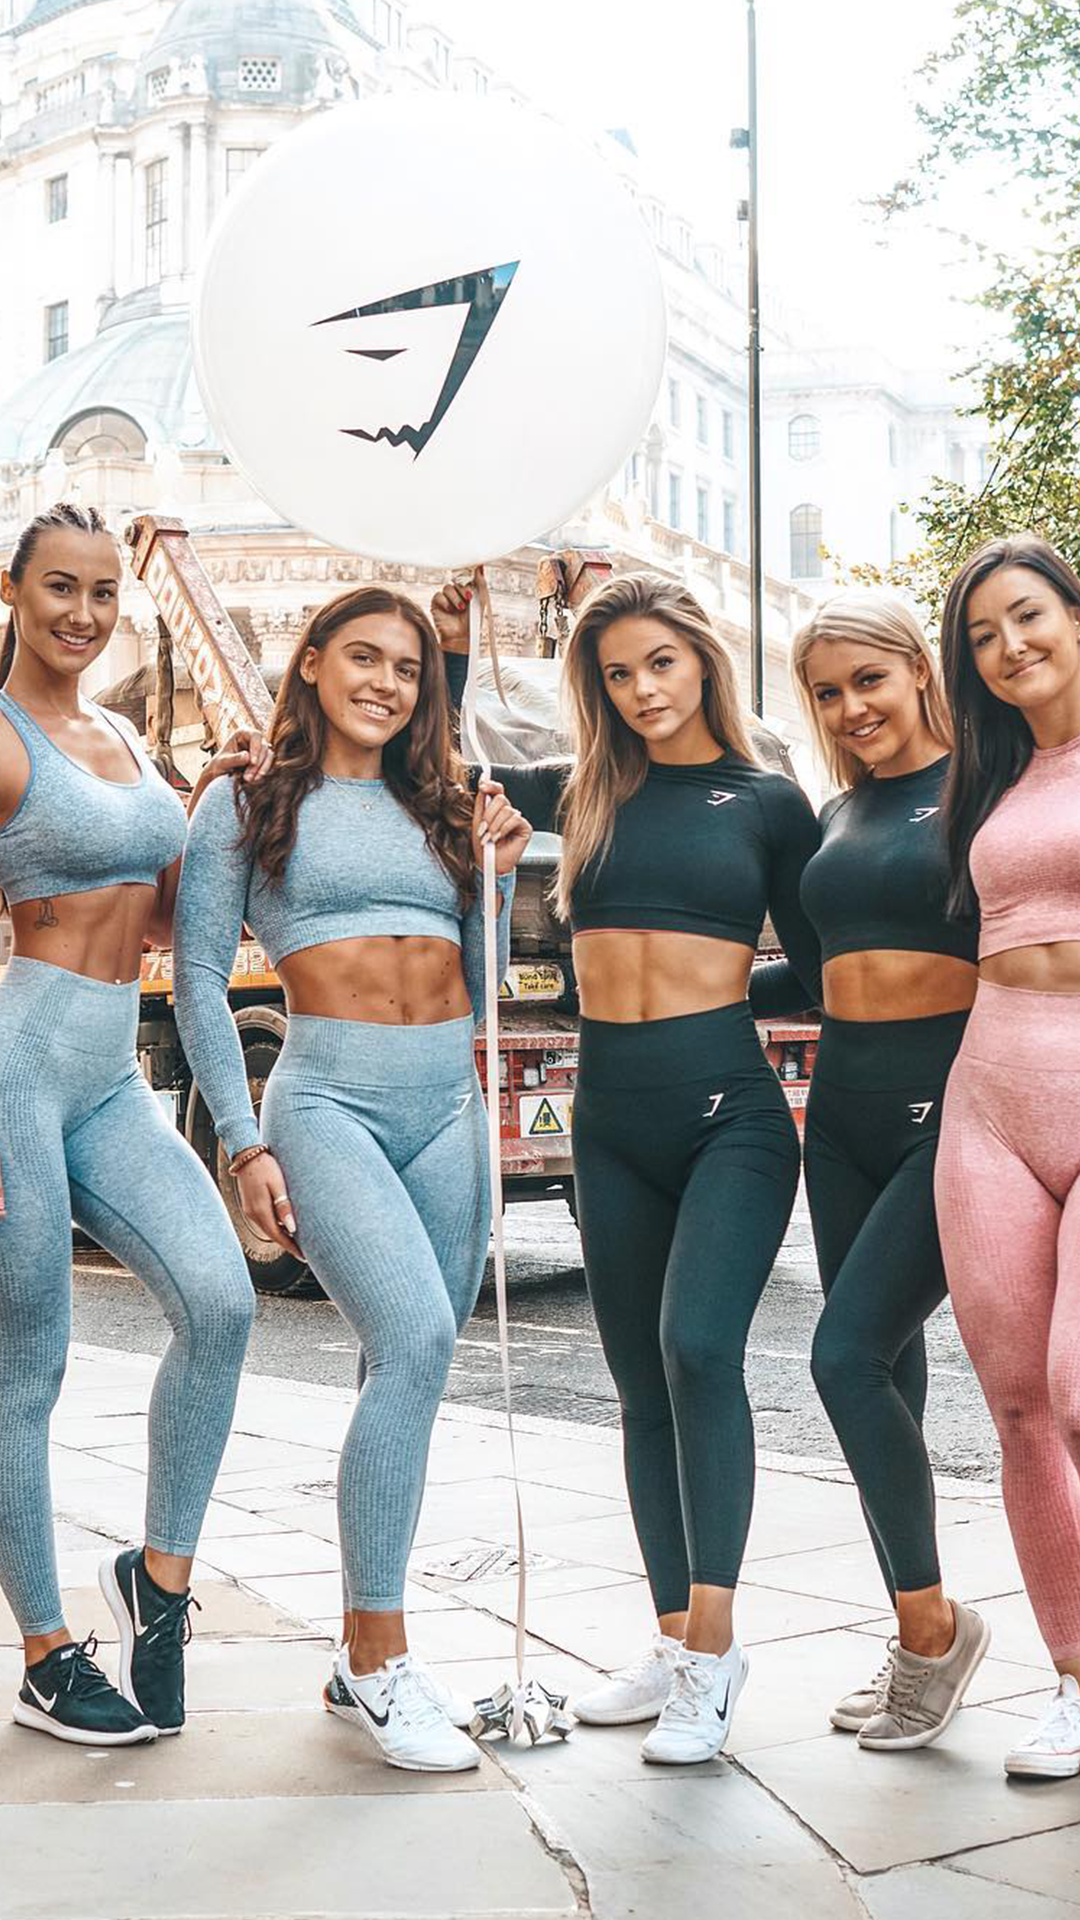 48e1f543c5234 The gals sportin' the Vital Seamless set in Steel Blue, Black and Dusky  Pink! What a team! #Gymshark #Gym #Sweat #Train #Perform #Seamless  #Exercise ...